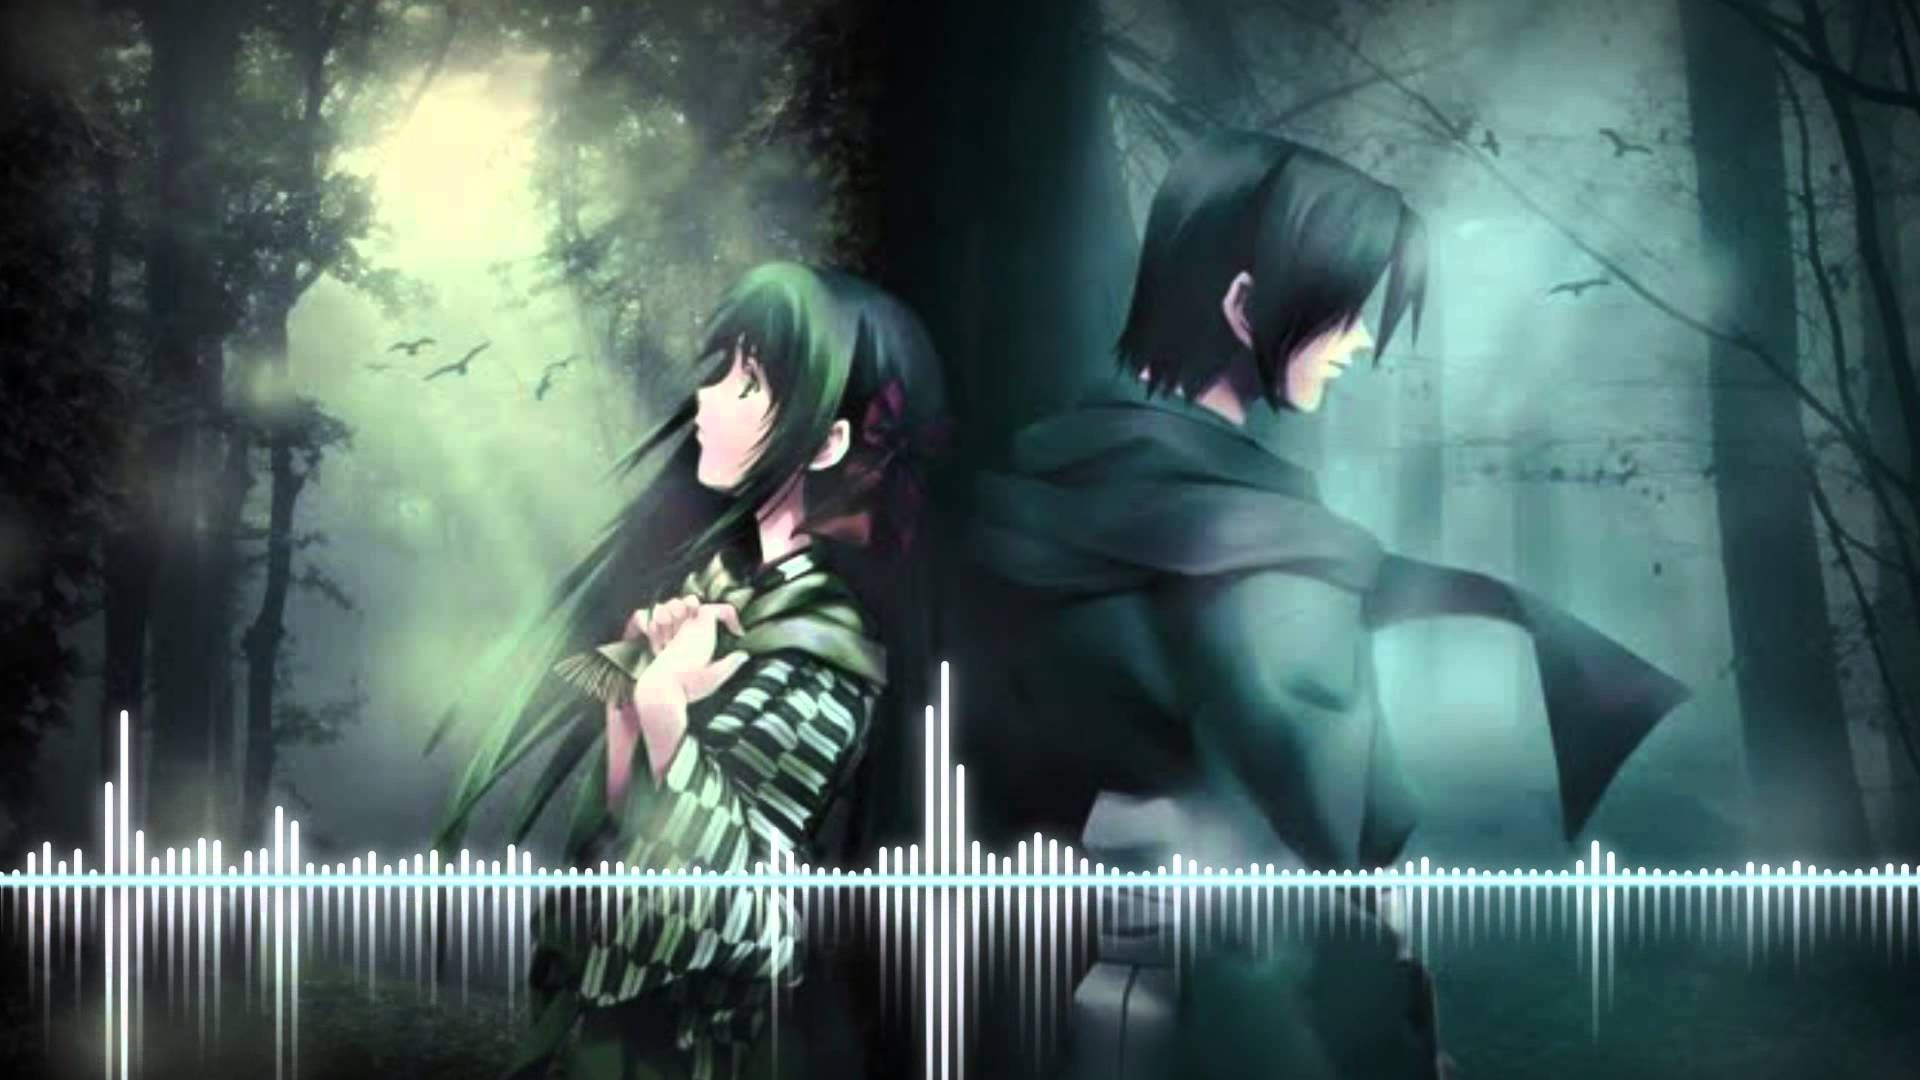 Pin On My Music Great wallpapers for anime lovers